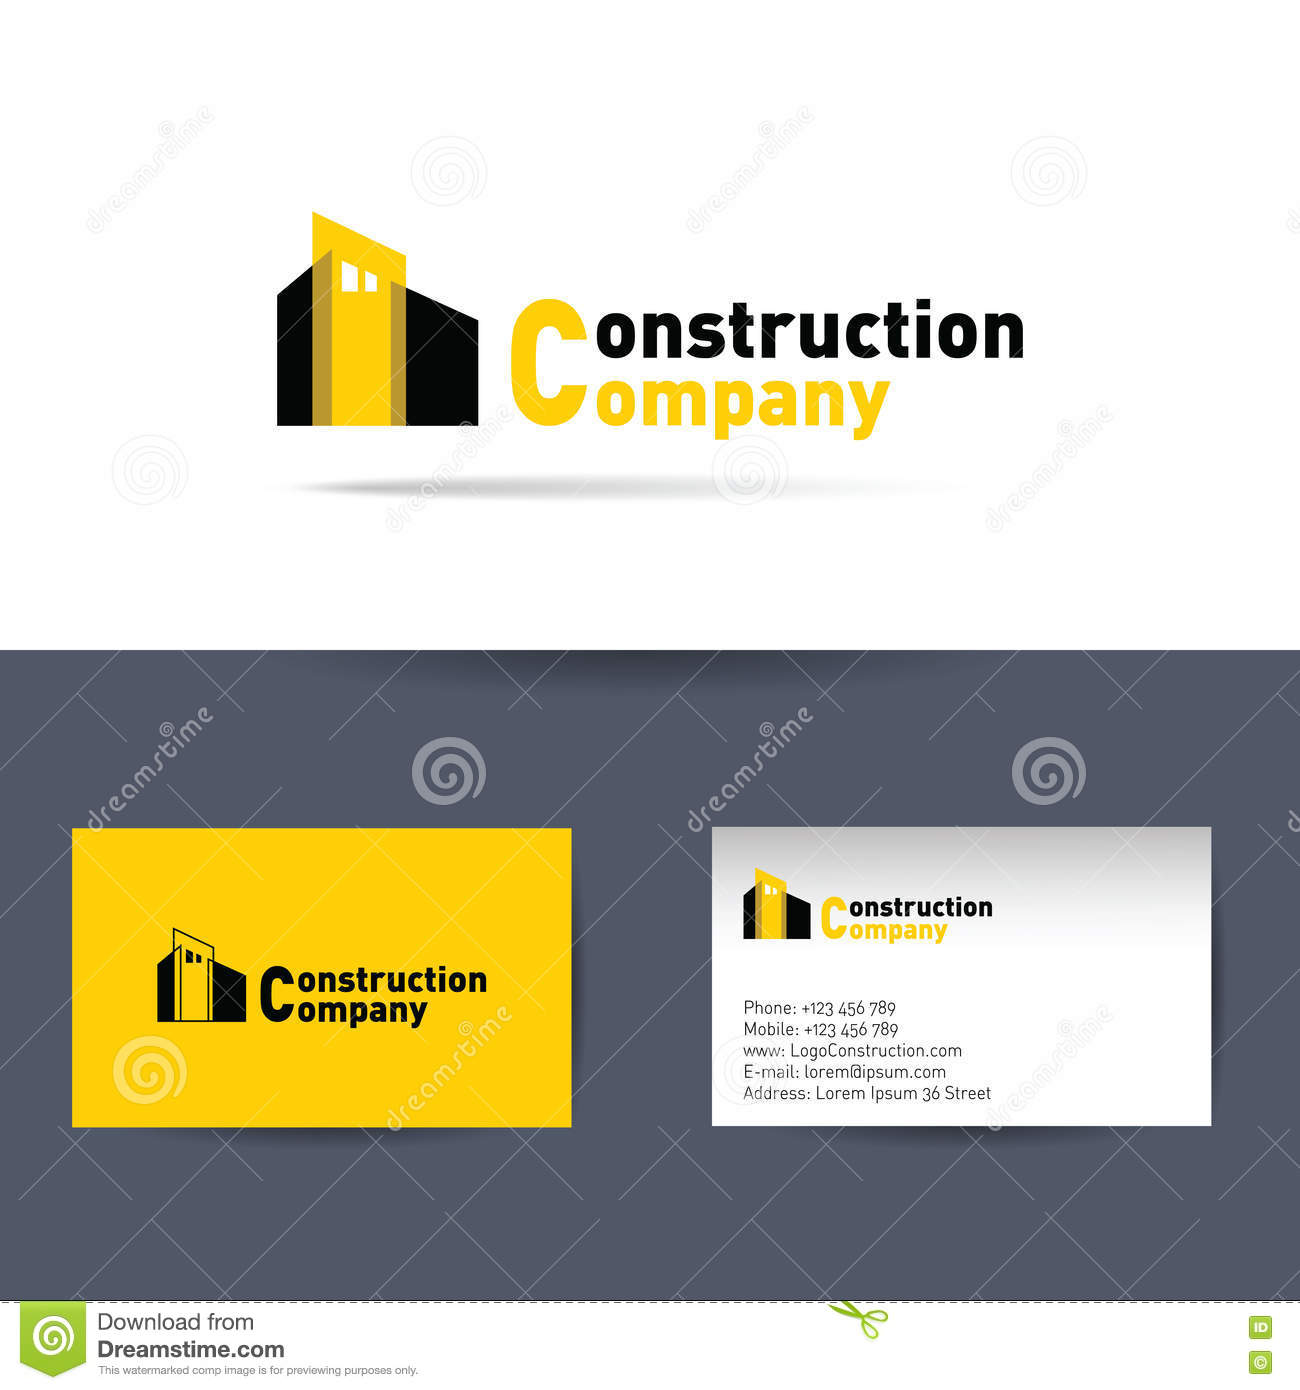 Construction company business card template stock vector construction company business card template cheaphphosting Choice Image